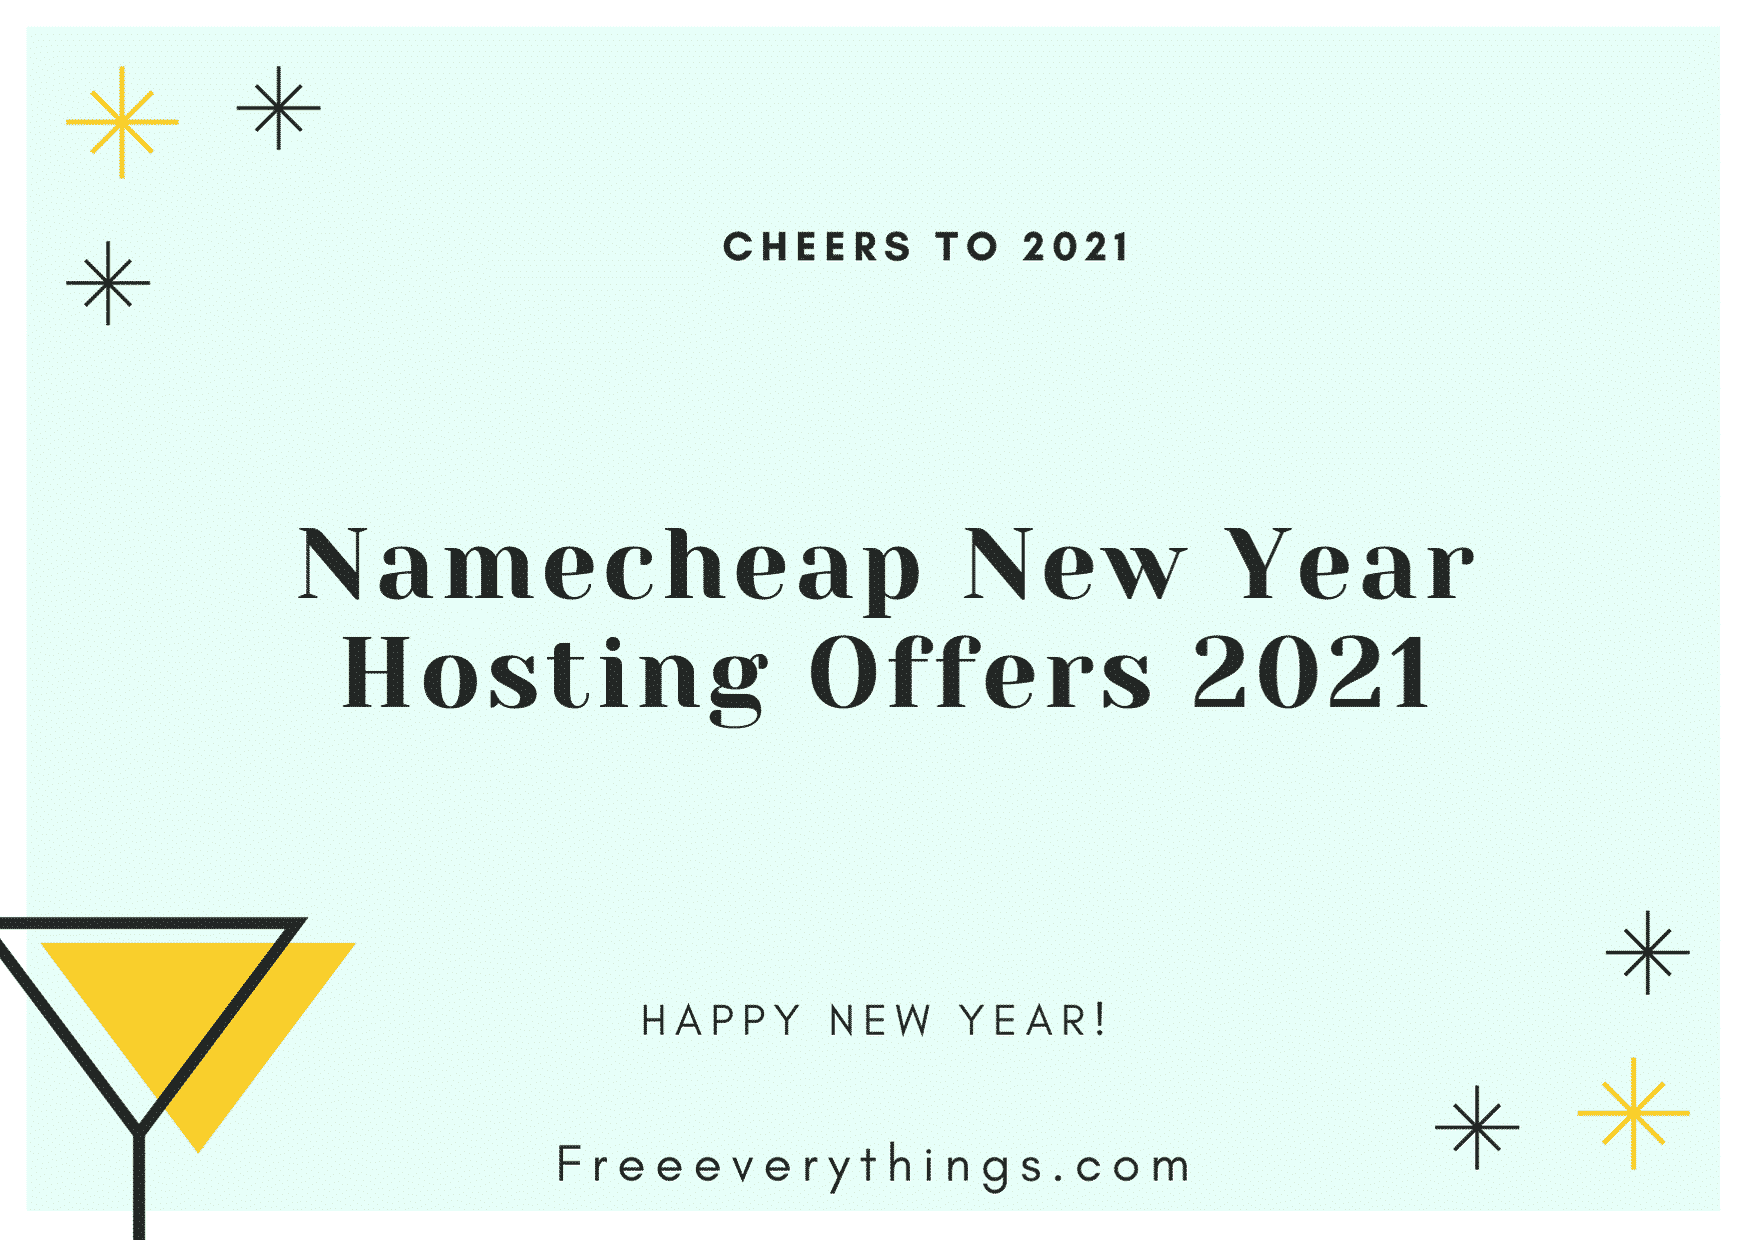 Namecheap New Year Hosting Offers 2021